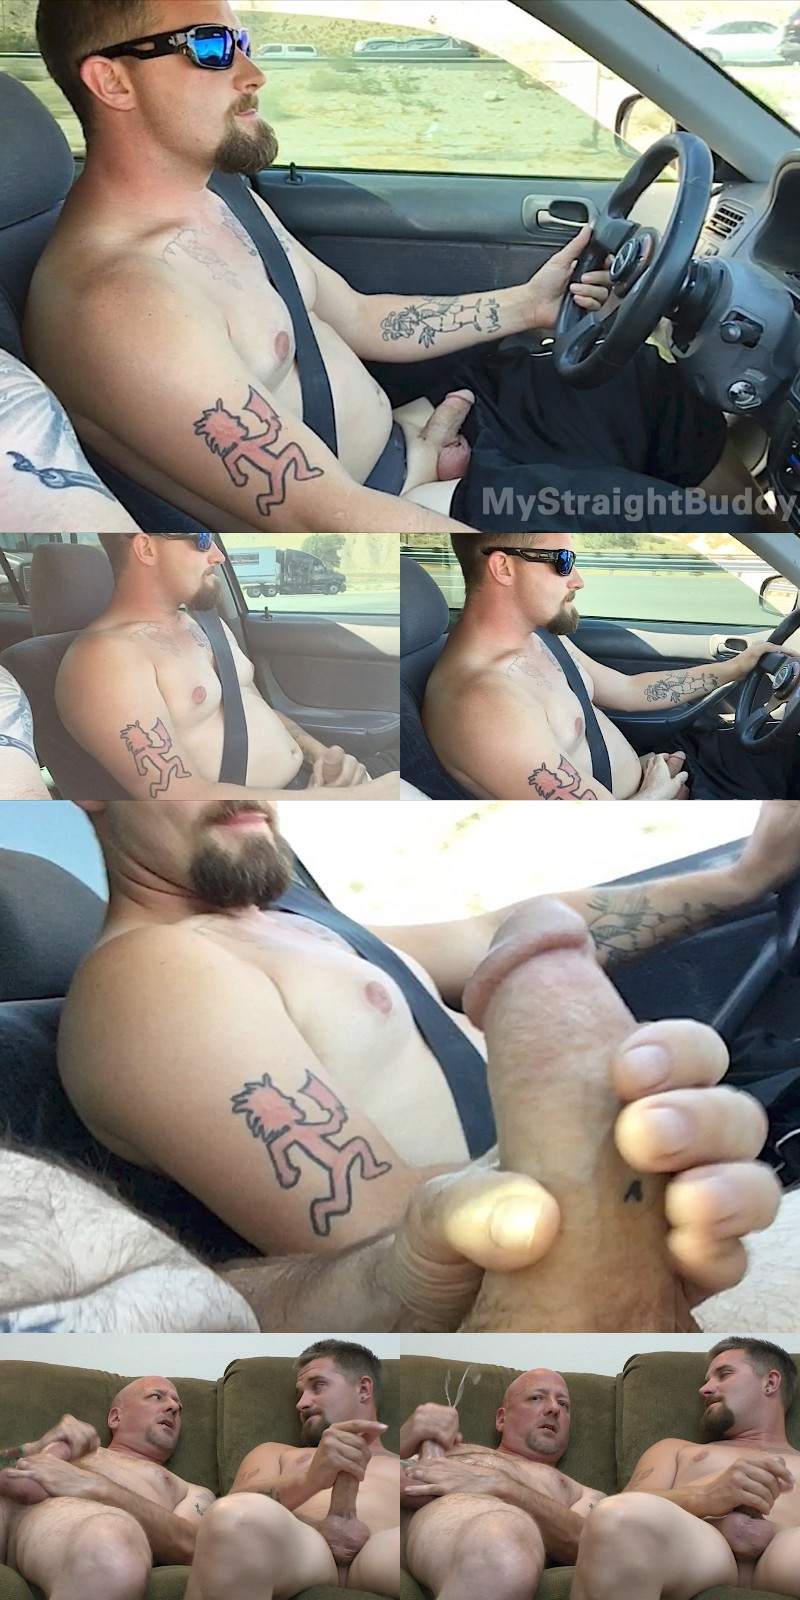 Two Buddies Driving Naked & Stroking Their Dicks